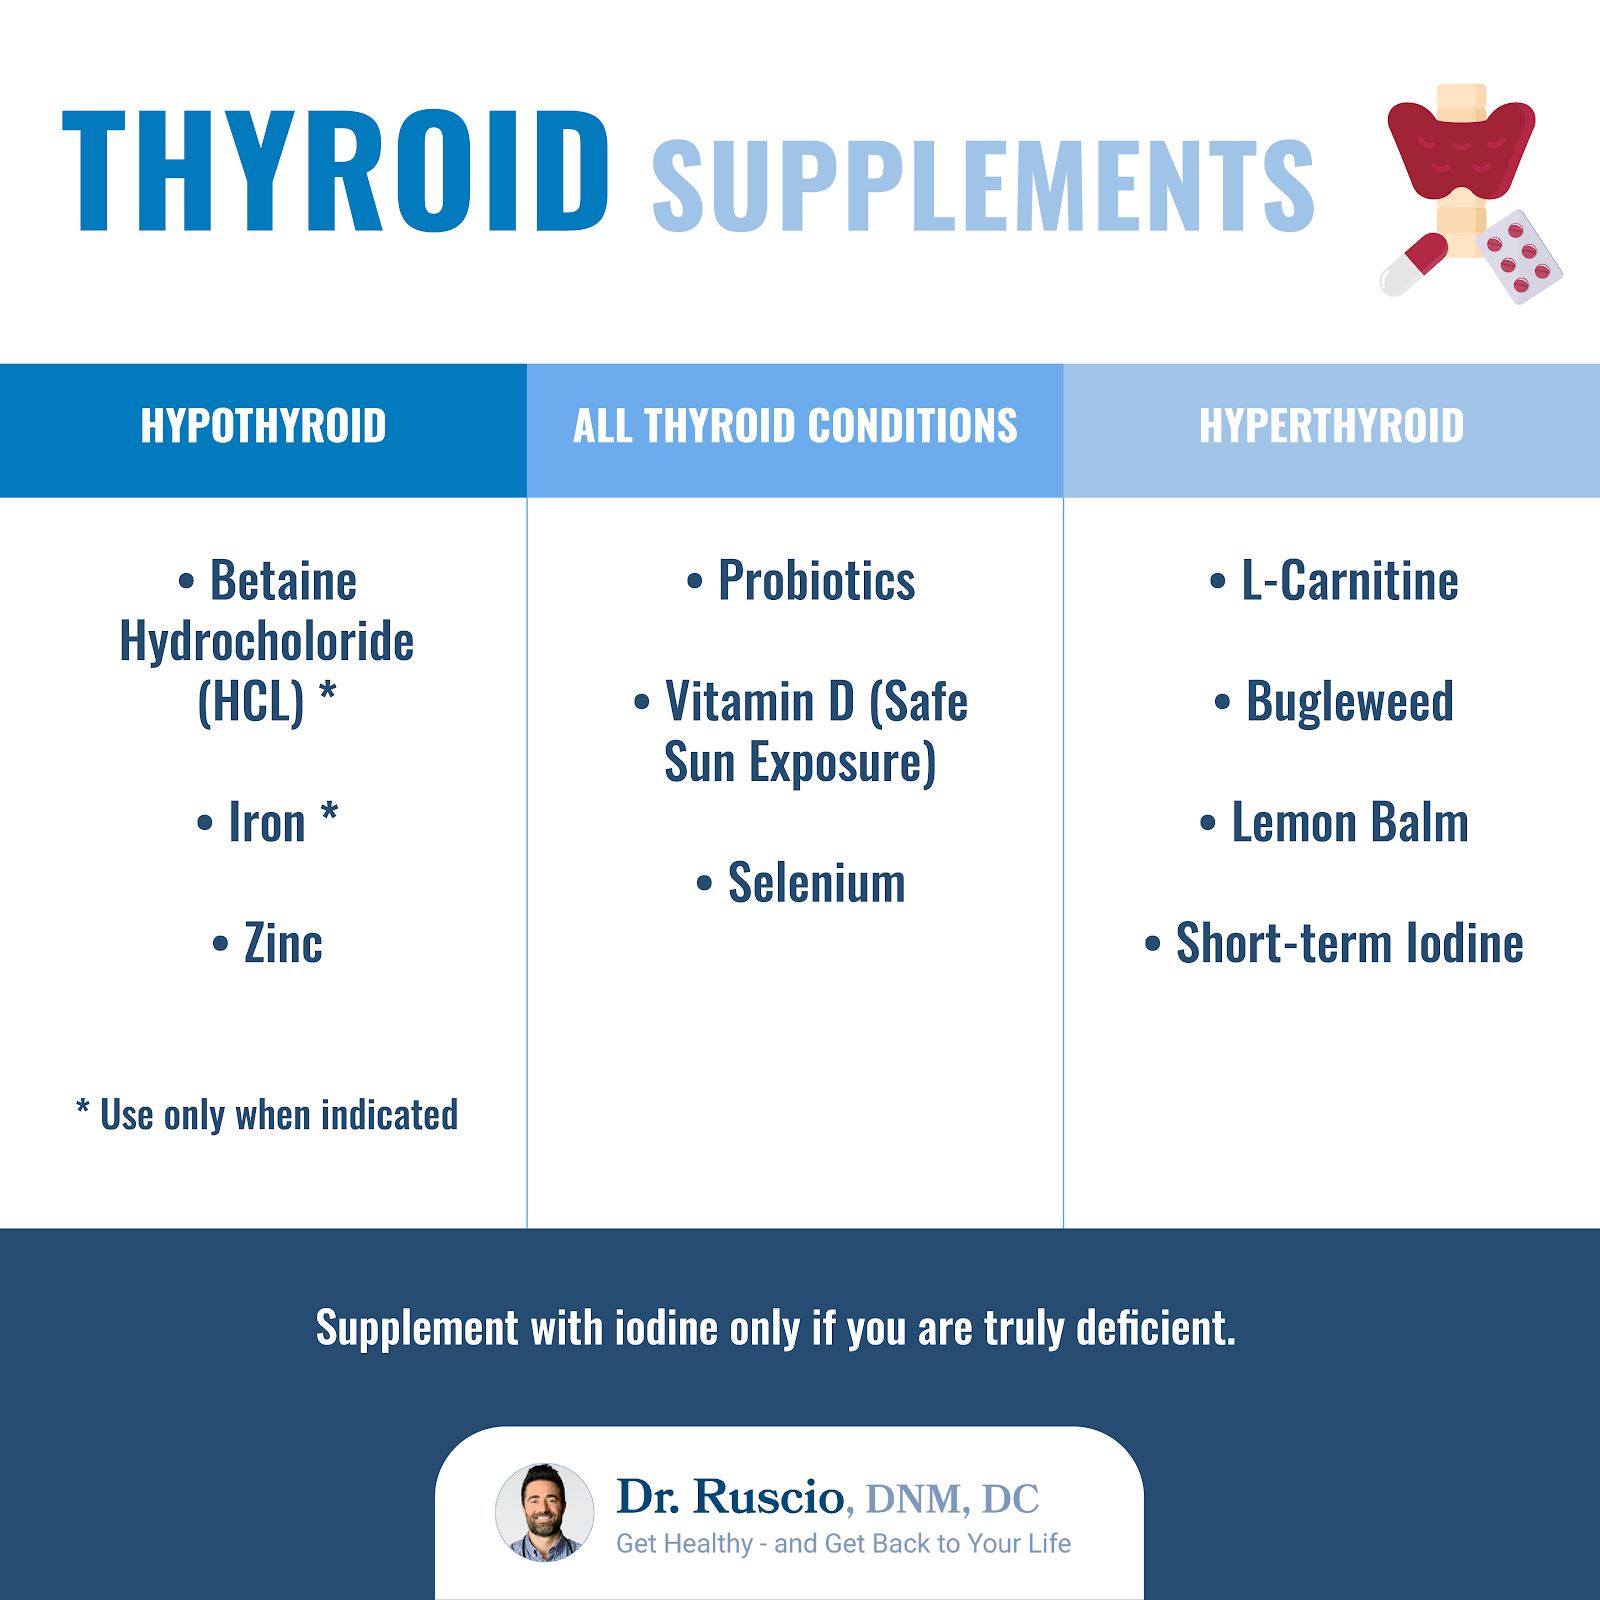 A graphic chart showing the best thyroid supplements for different thyroid conditions